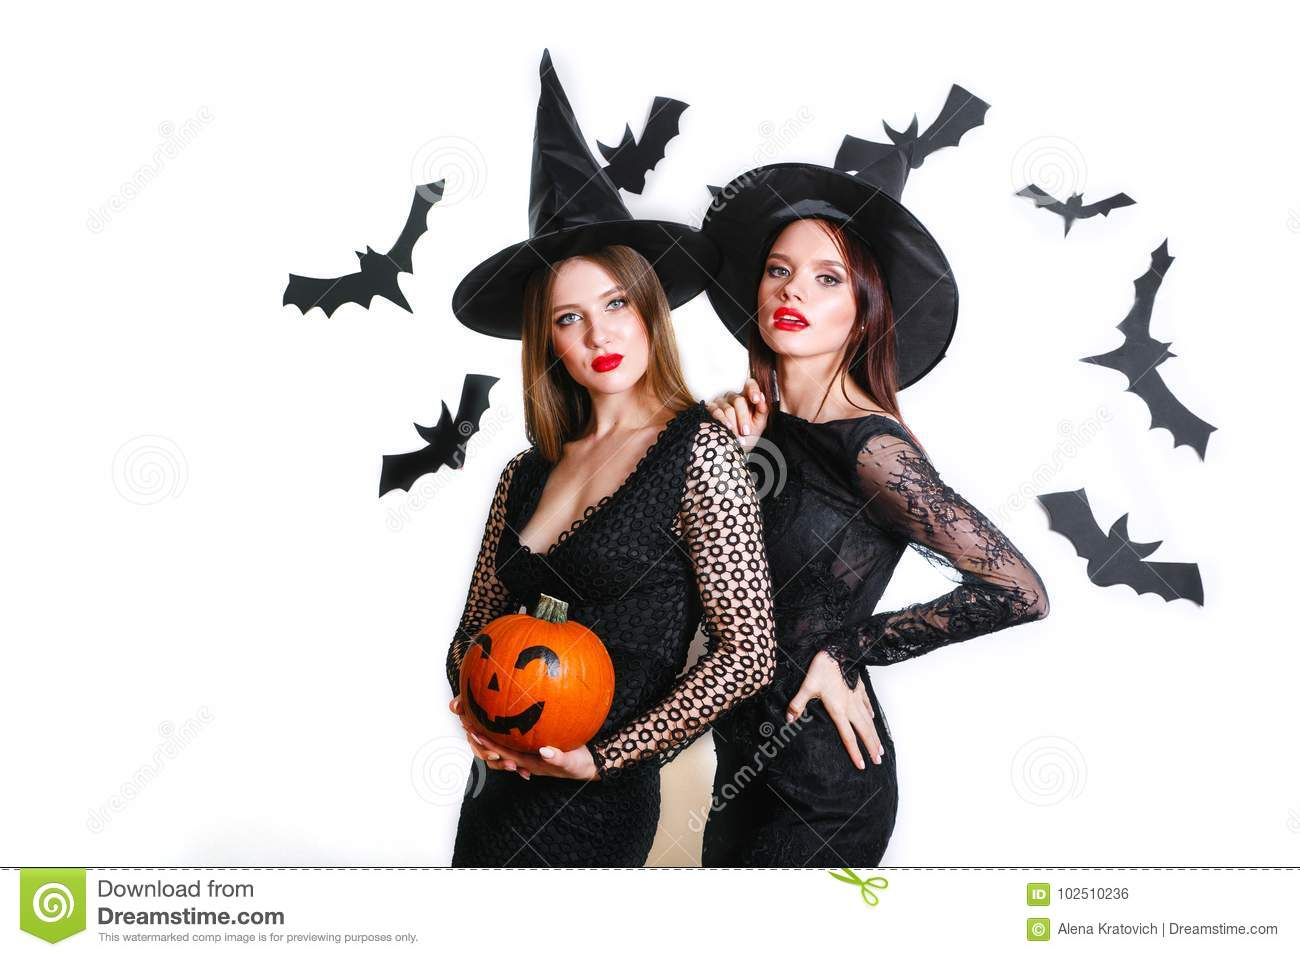 Halloween Costumes For Two Women.Two Happy Women In Black Witch Halloween Costumes With Pumpkin On Party Over White Background Stock Photo Image Of Beauty Girl 102510236